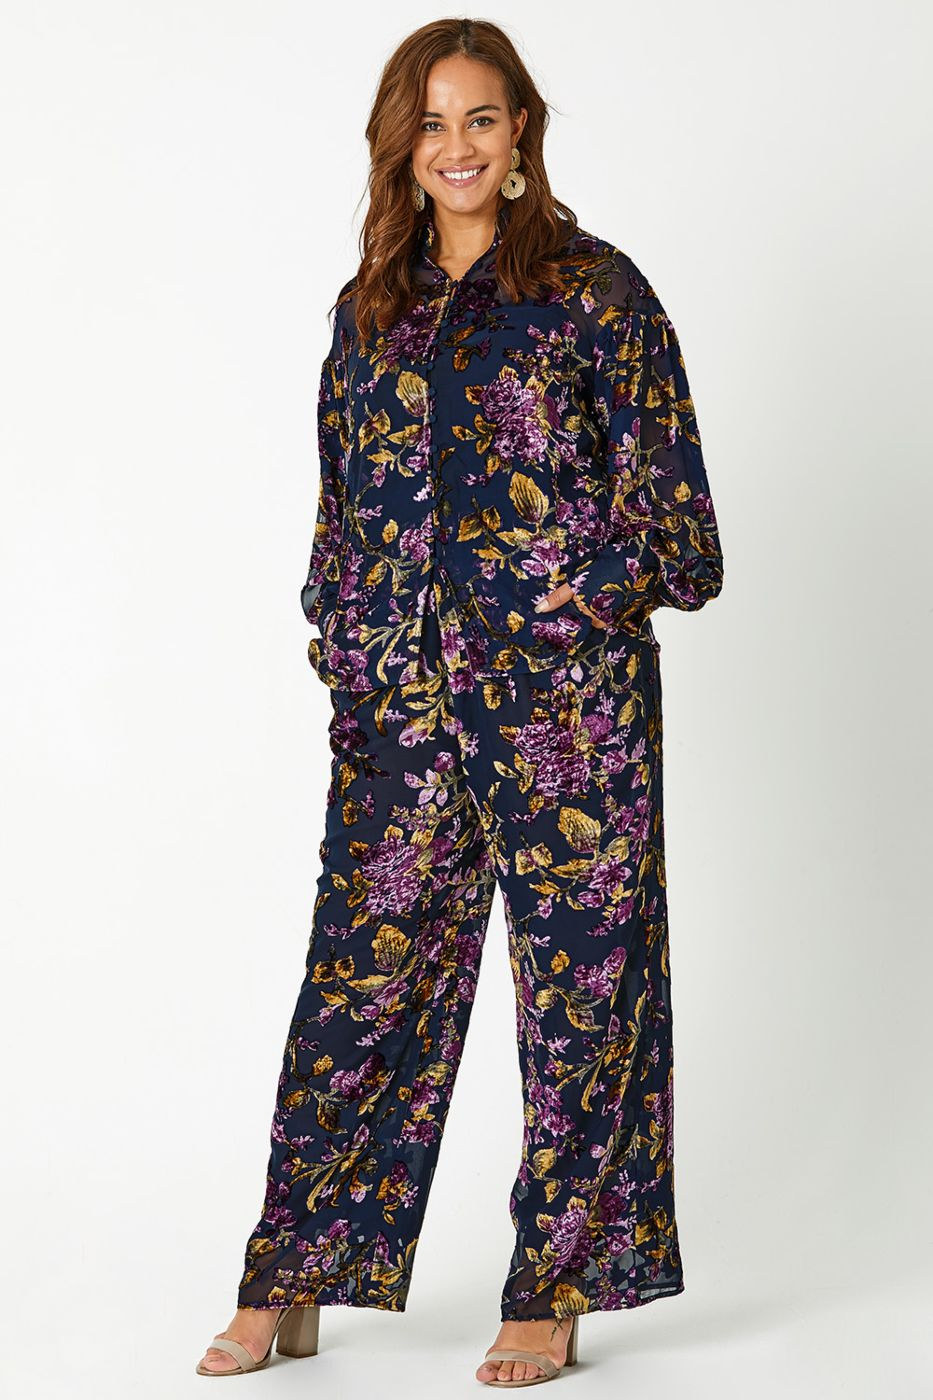 Plus Sized Brands That Will Help You Rock End of Year Style.jpg